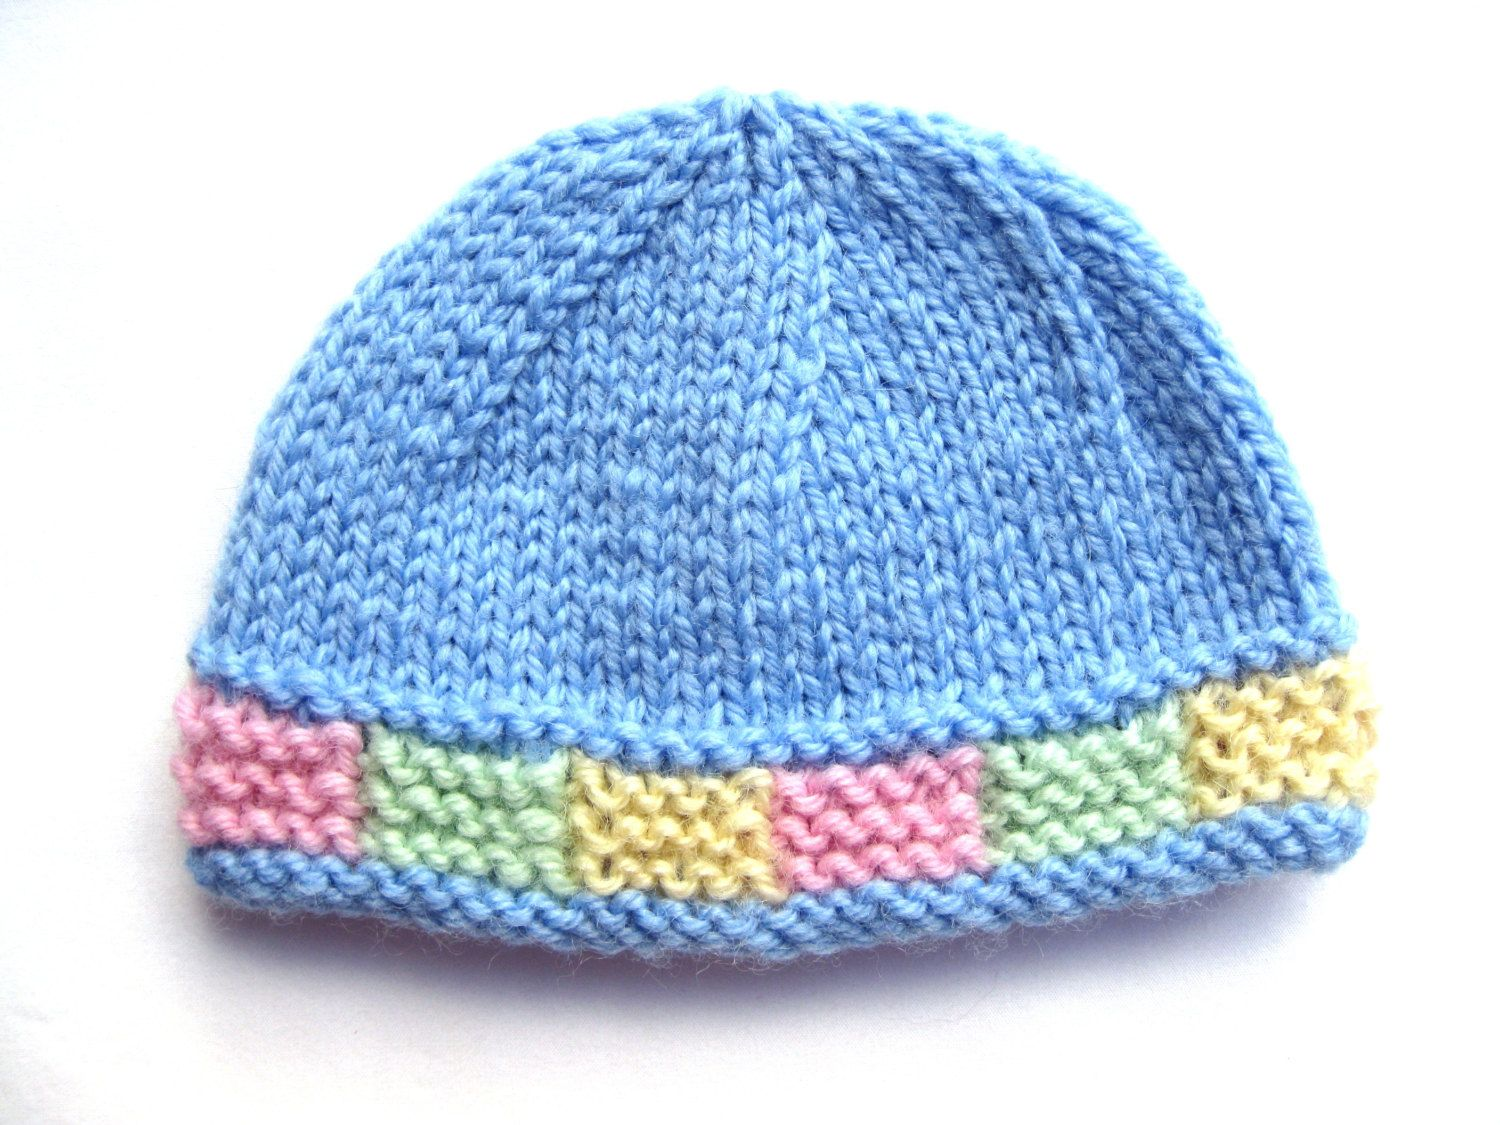 Instant download pattern knit preemie hat with colorful garter instant download pattern knit preemie hat with colorful garter stitch band bankloansurffo Image collections